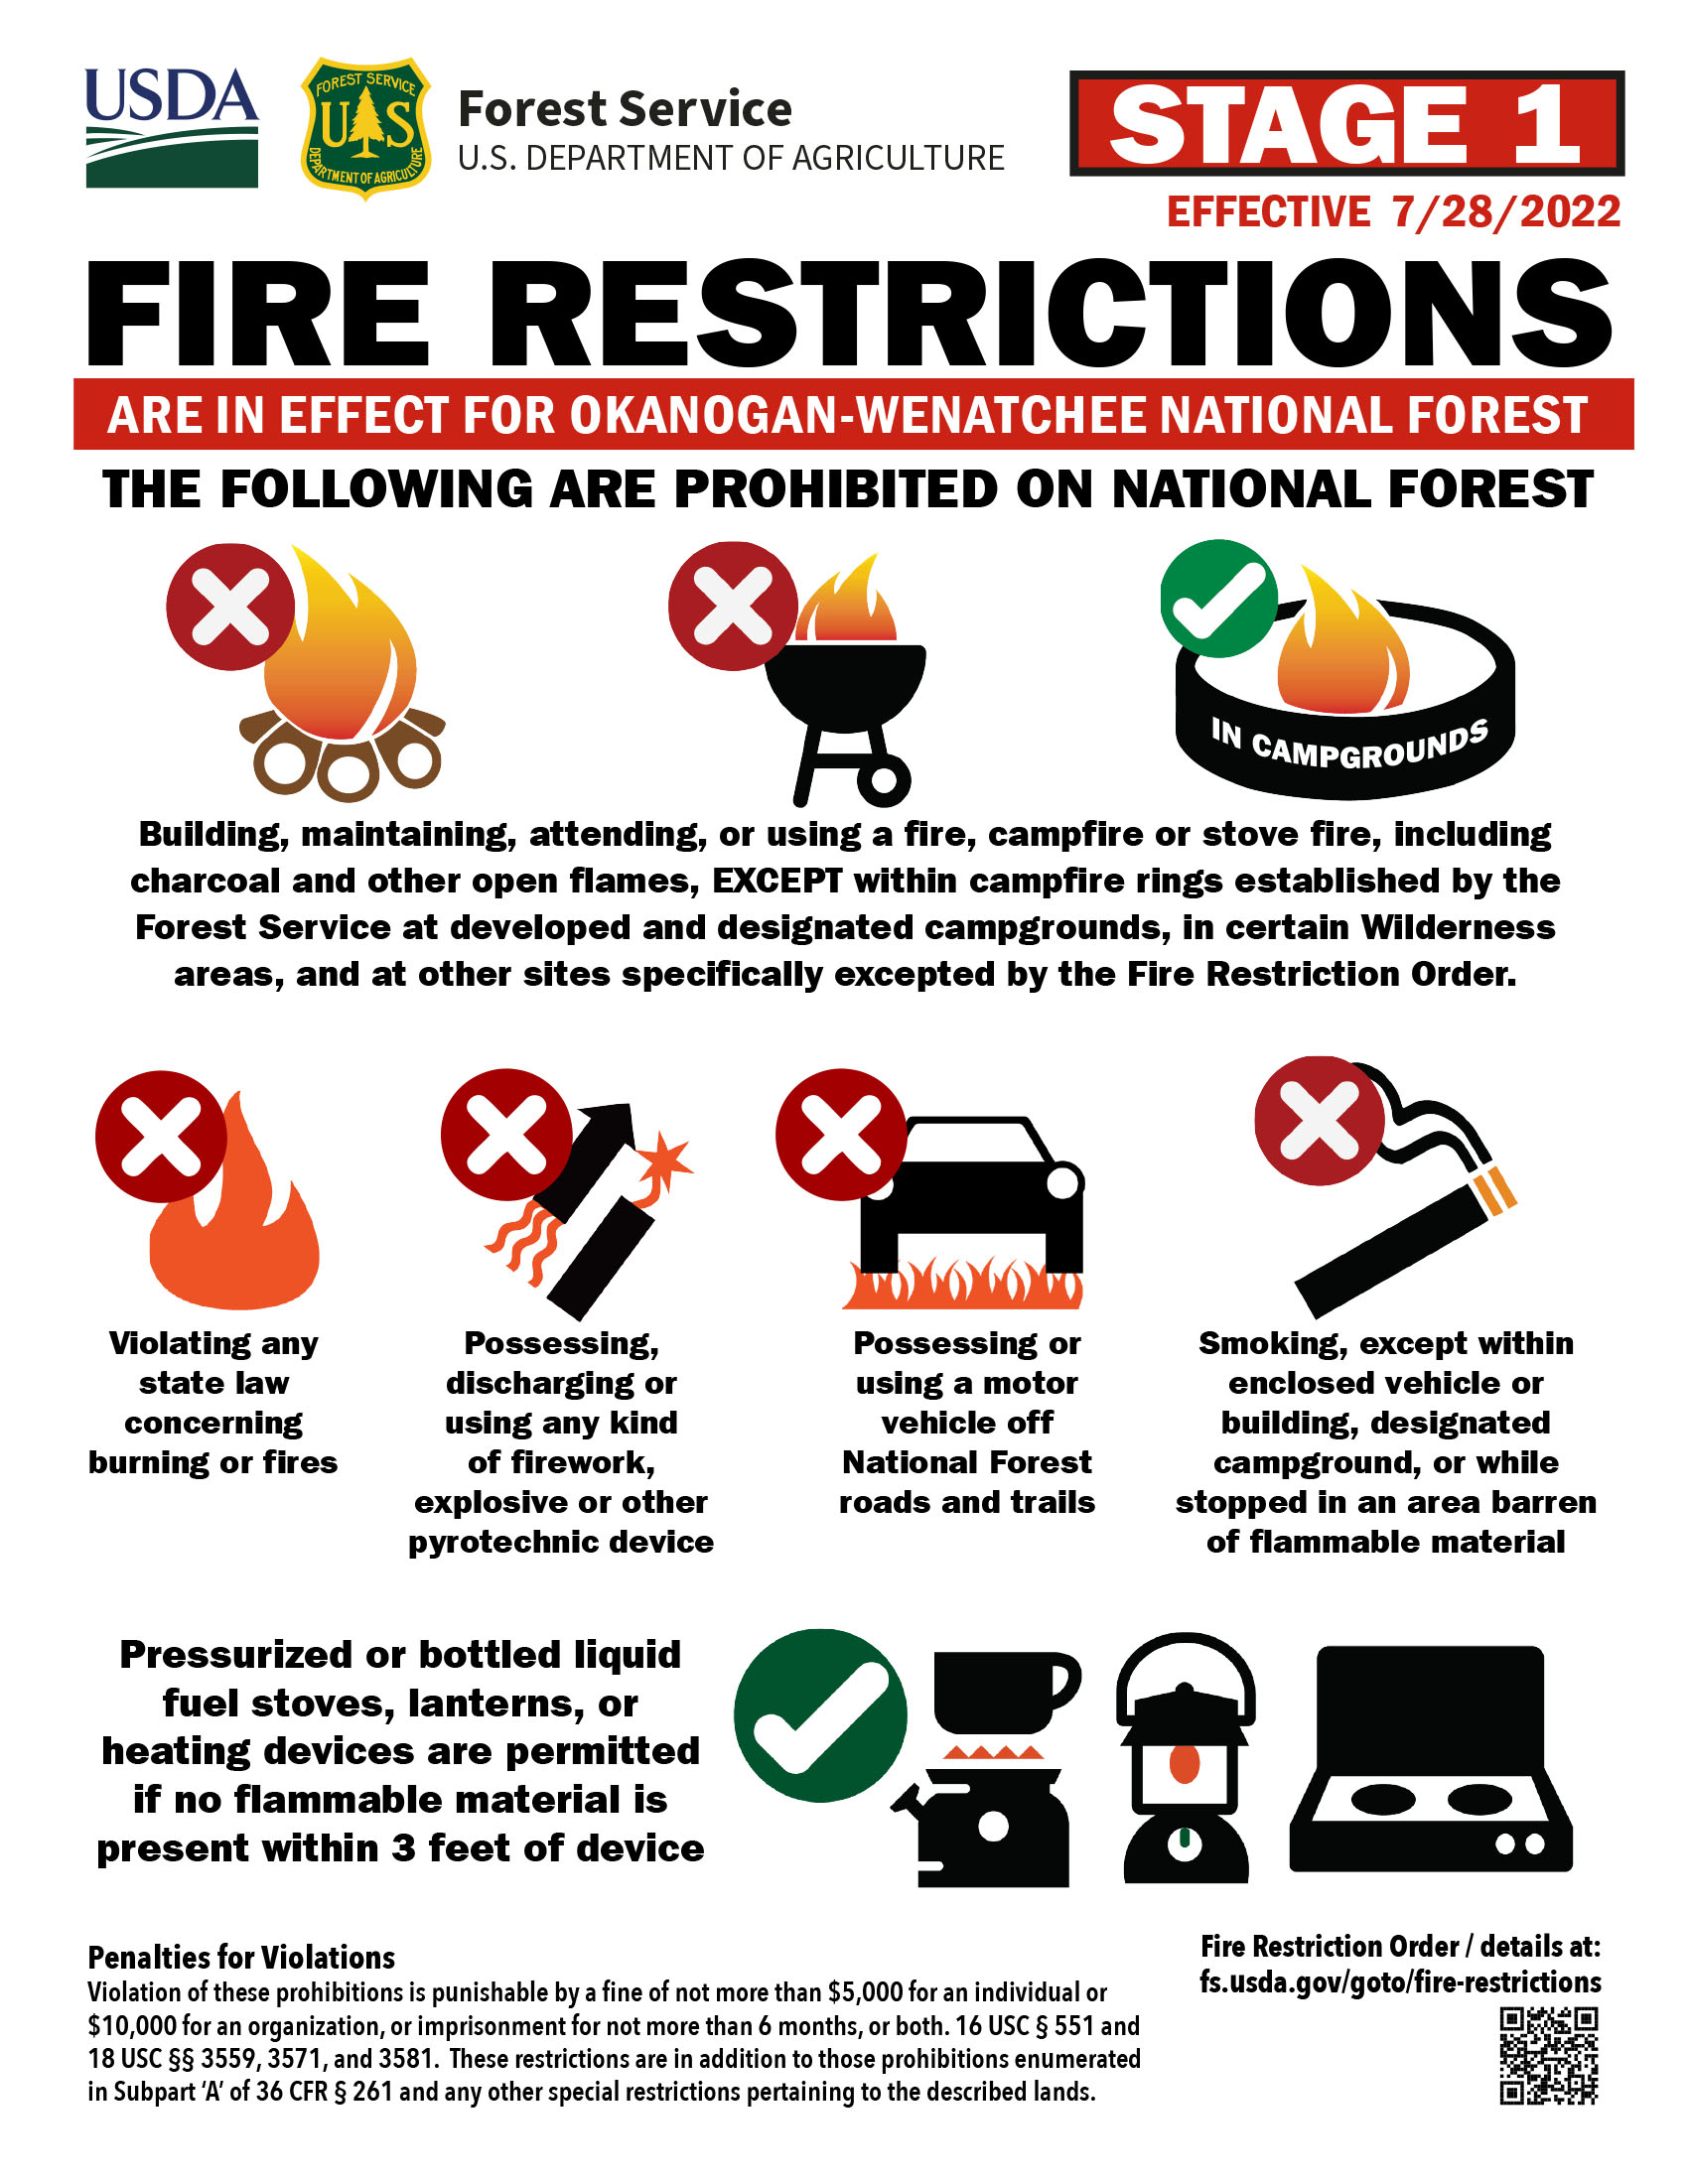 Stage 1 fire restriction poster image